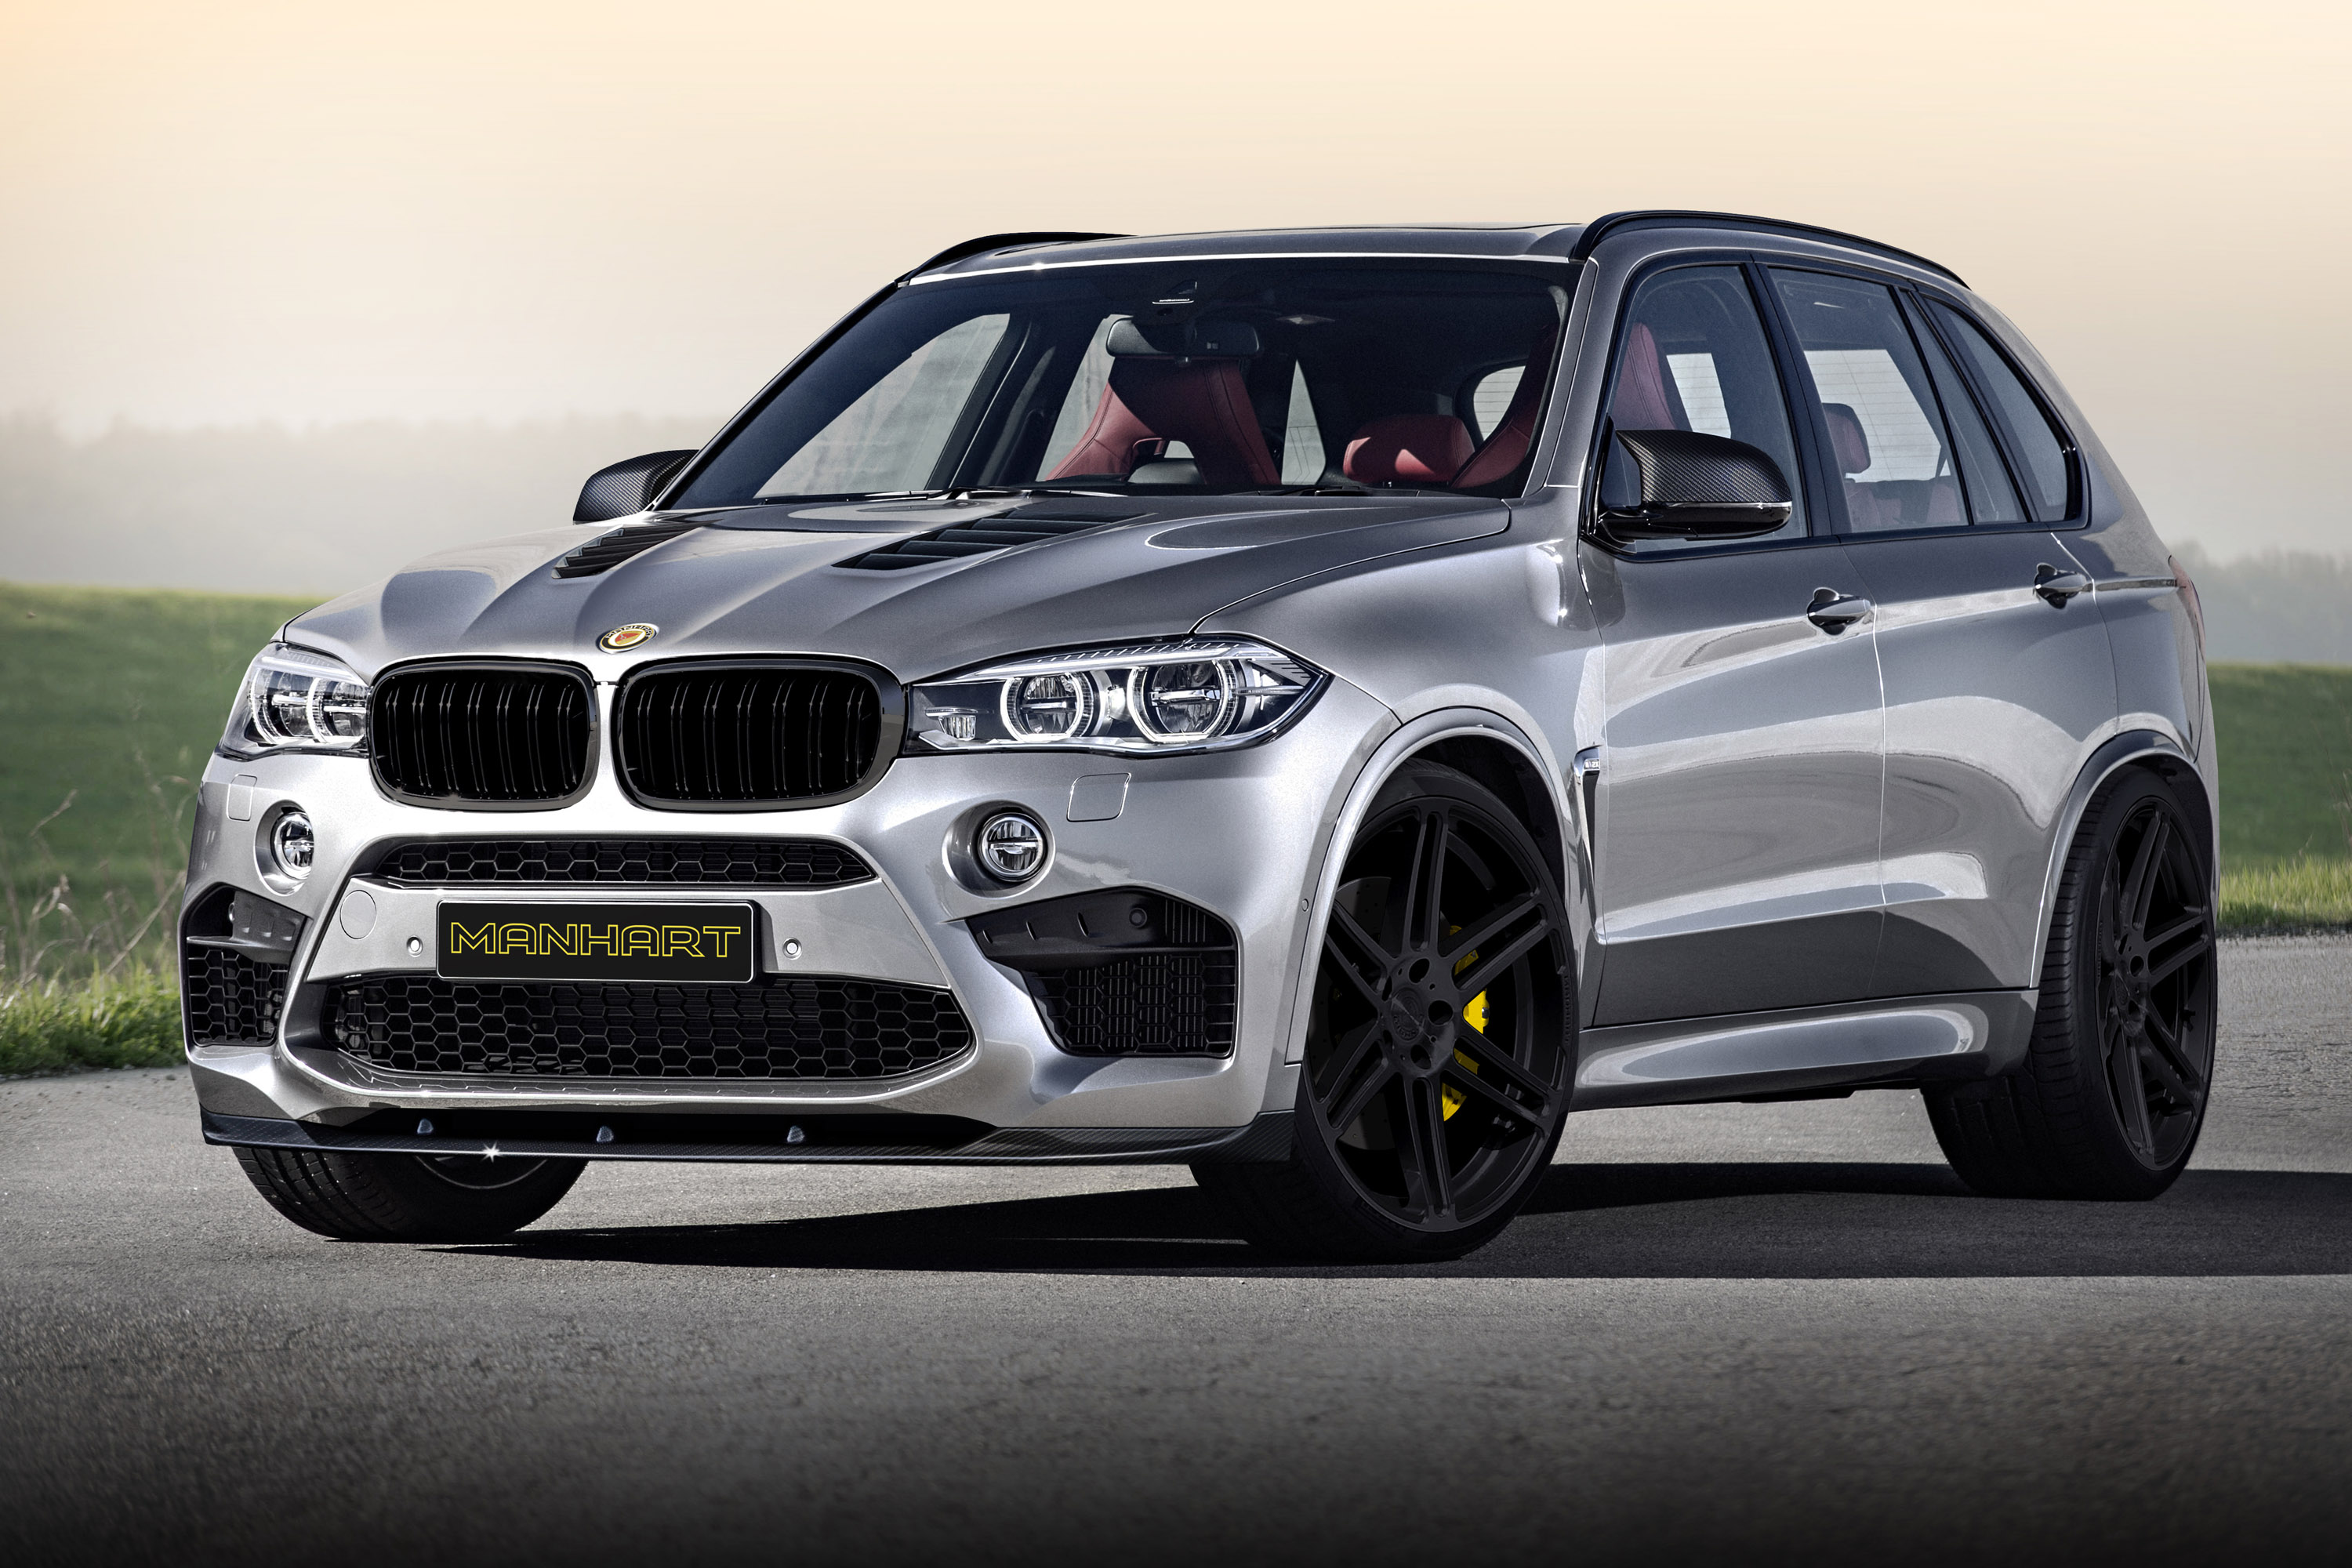 Manhart Mhx5 750 Promised To Be Faster Than Bmw X5m F85